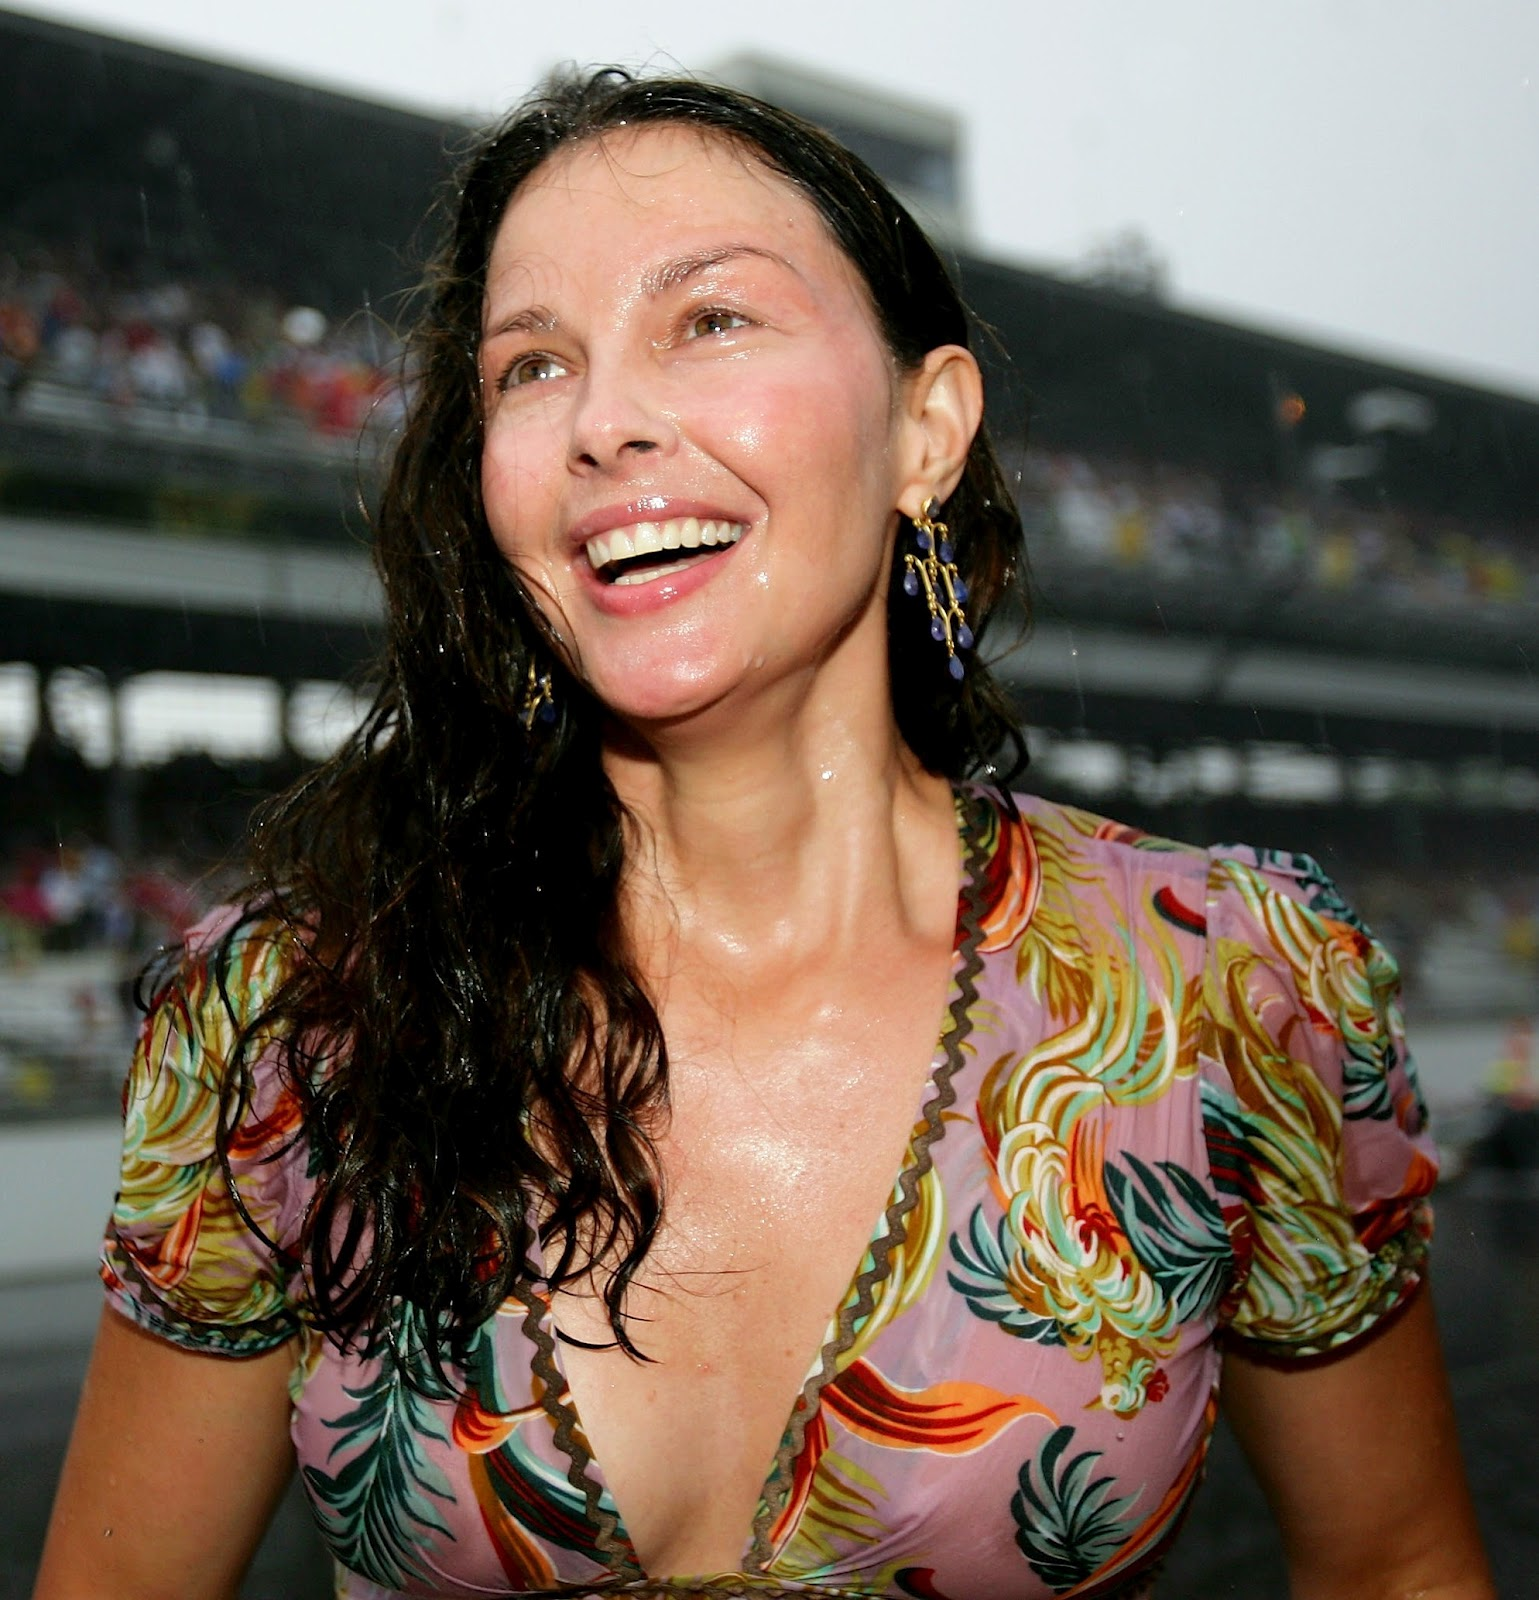 http://1.bp.blogspot.com/-nLLN6Zknqeg/T5hWq7PwMbI/AAAAAAAAA-k/bDZSqqkroYY/s1600/ashley_judd_indy_500_see_thru_in_the_rain_may_27_2007_MOdymd5.jpg